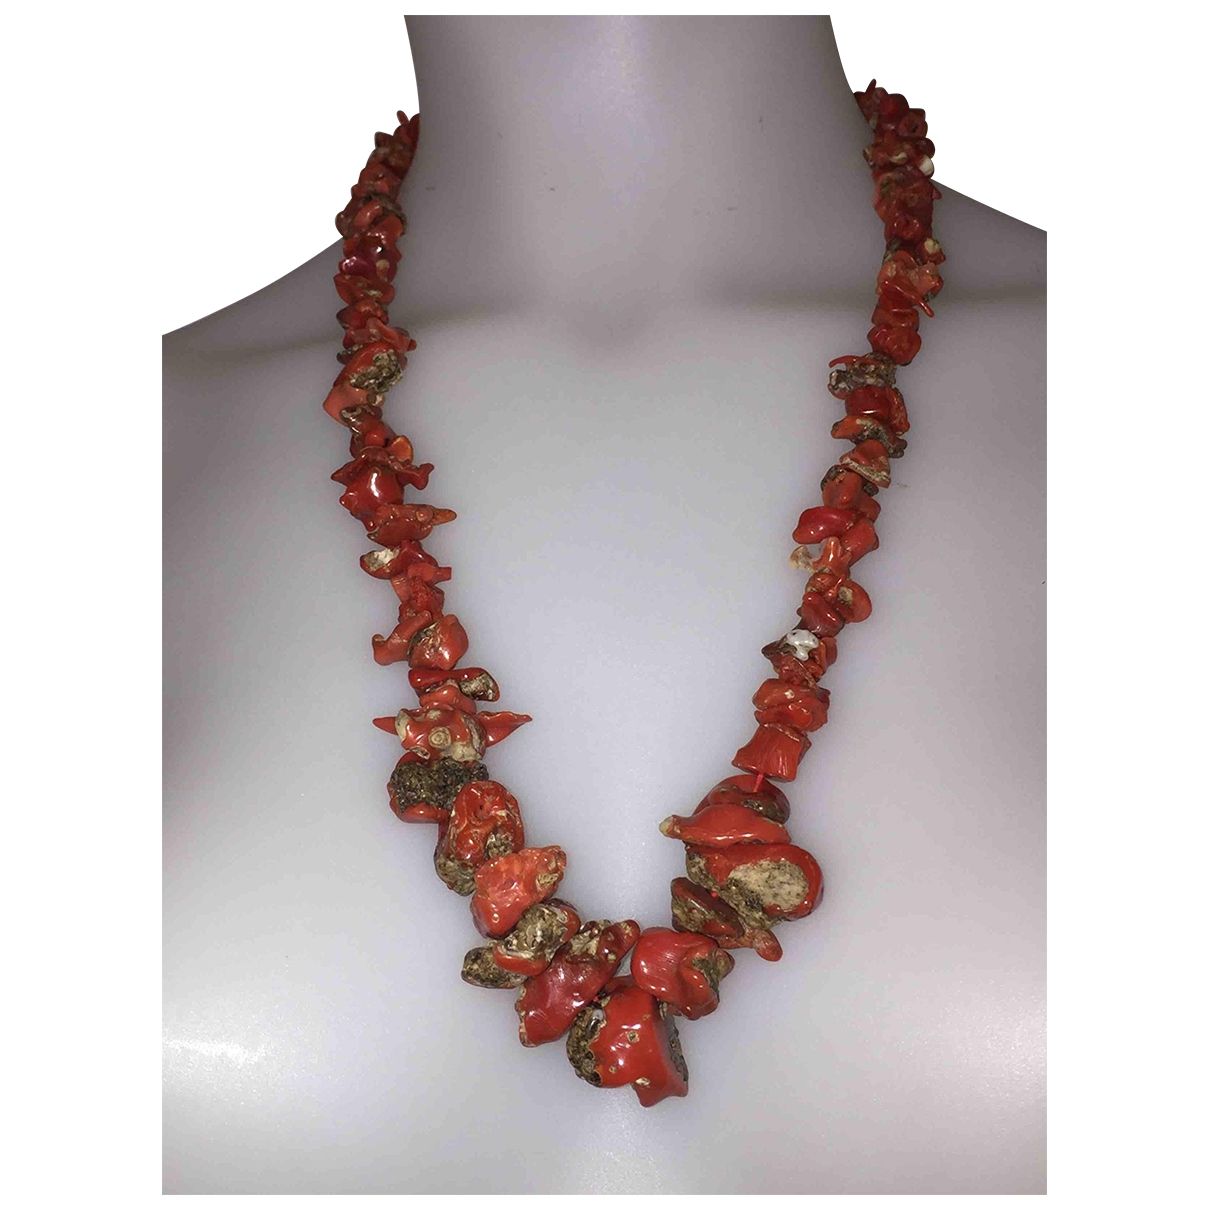 Non Signe / Unsigned Corail Kette in  Rot Metall